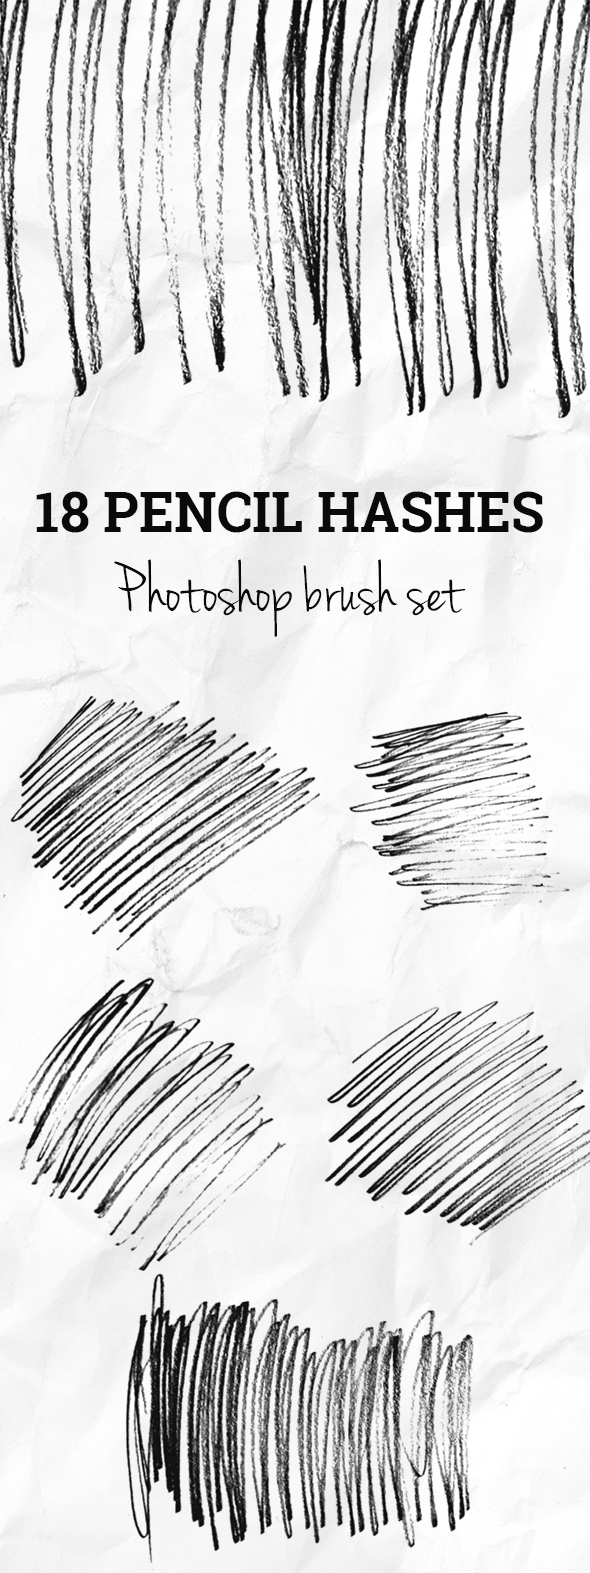 GraphicRiver 18 Pencil Hashes Photoshop Brush Set 20618894